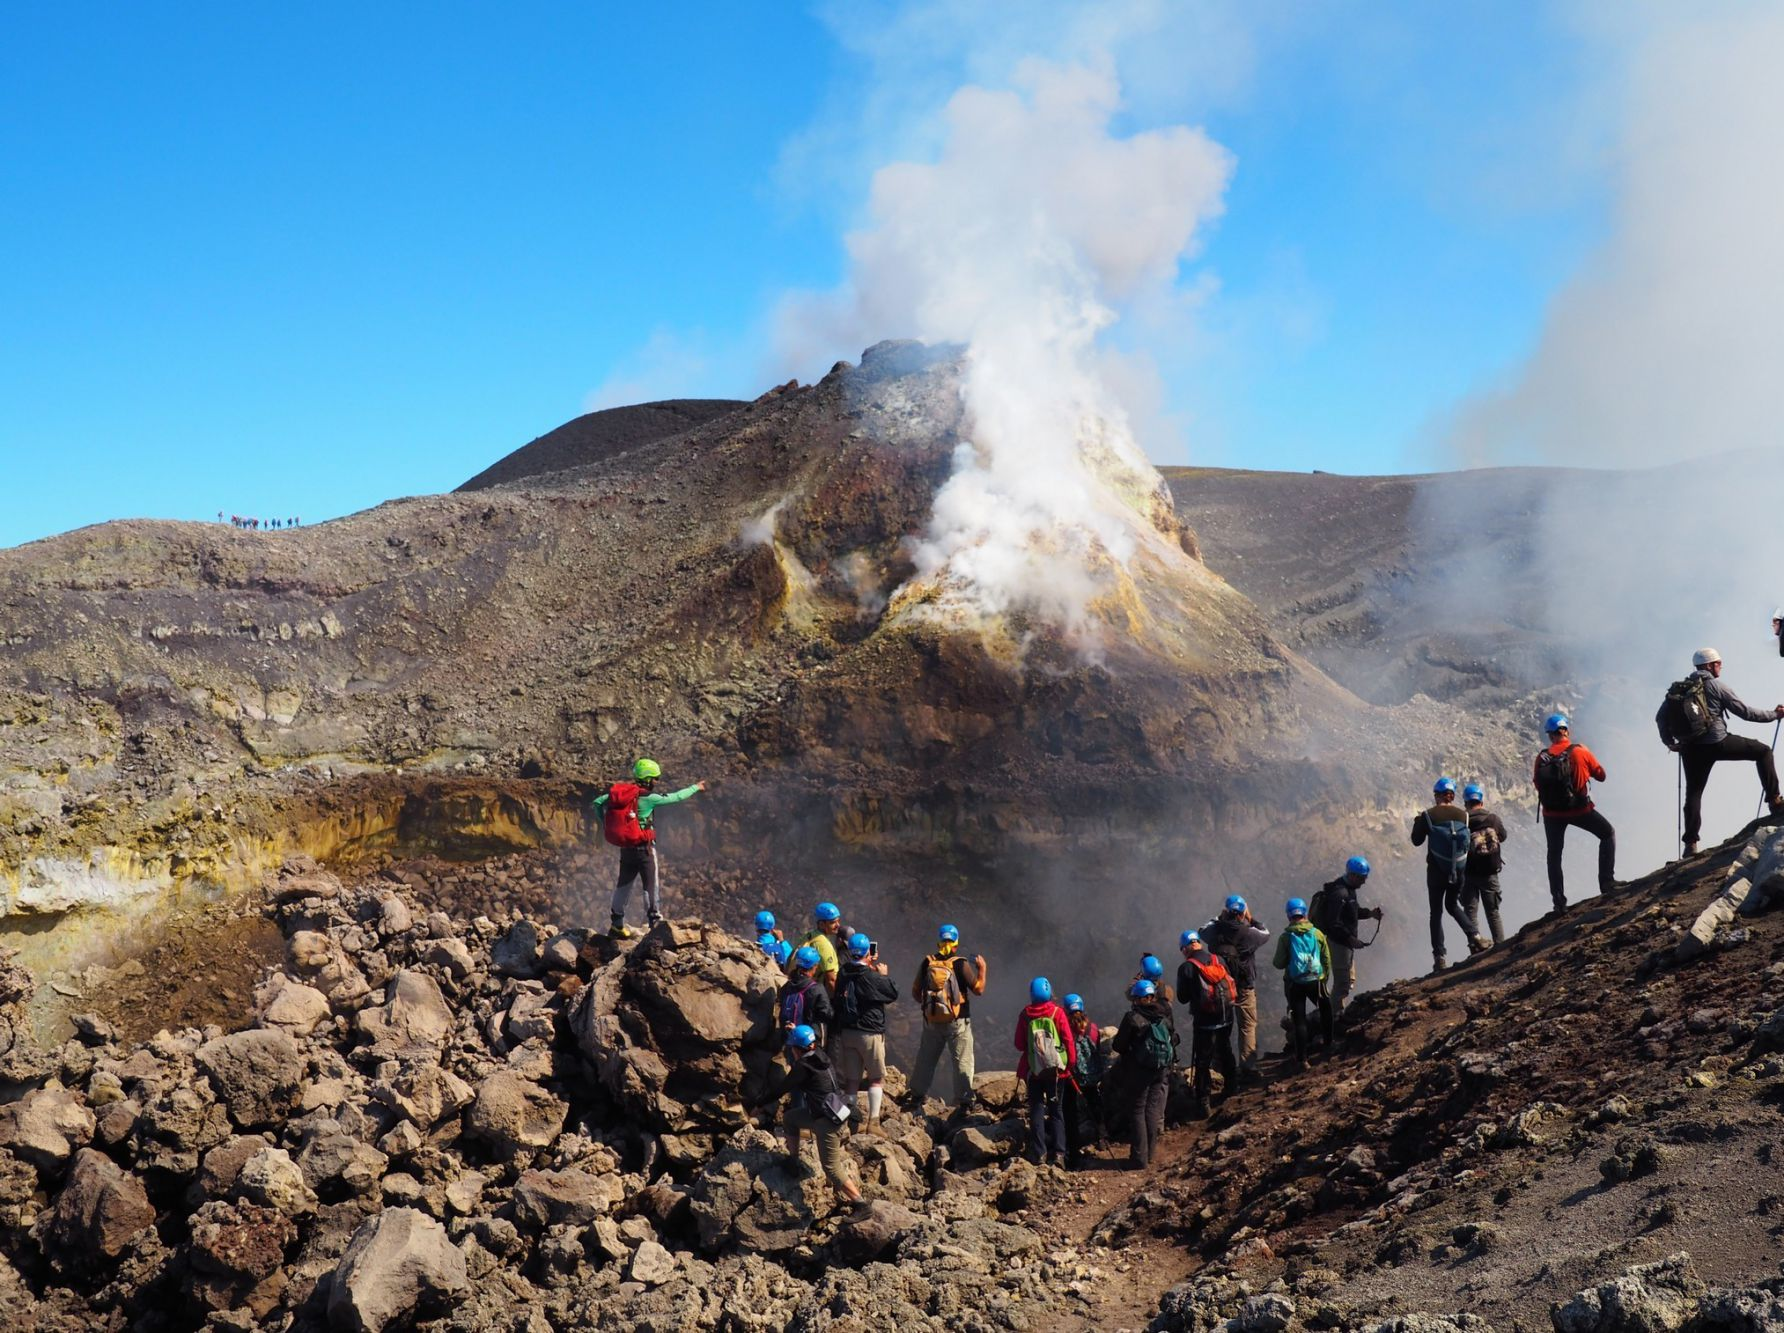 DISCOVER THE MAGNIFICENCE OF MOUNT ETNA